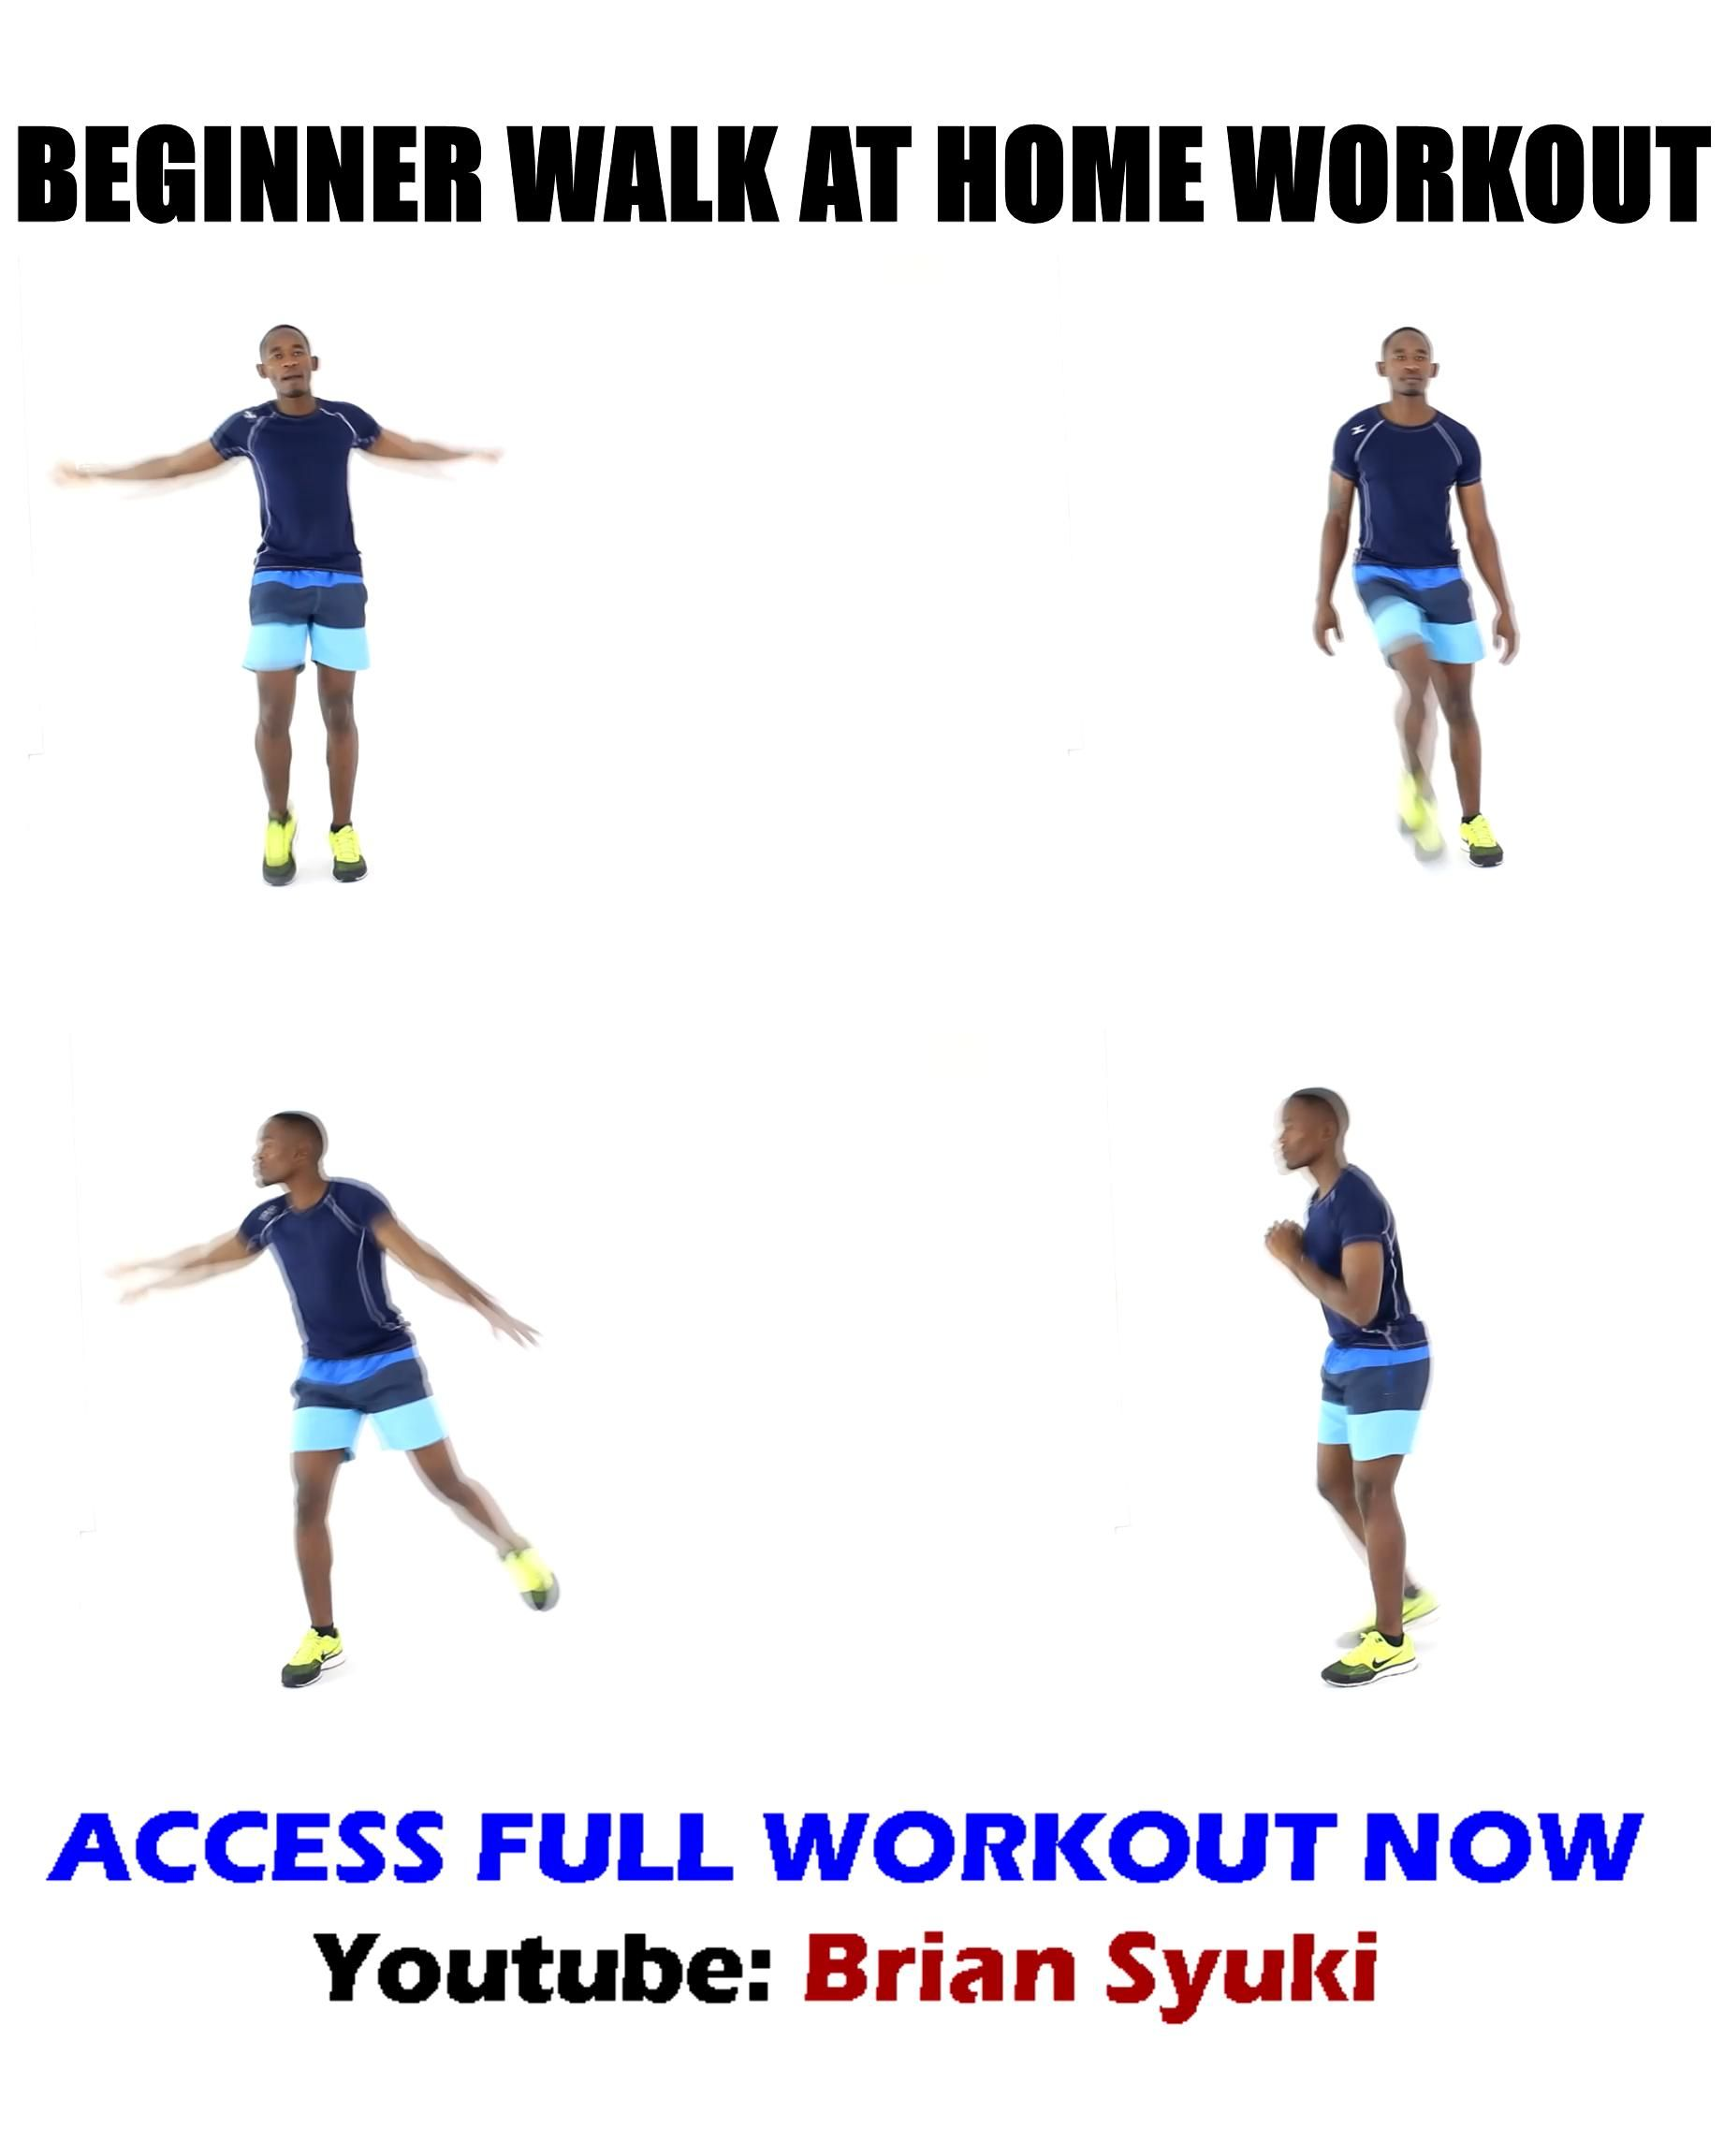 Beginner Walk At Home Workout For Seniors Video In 2020 Gym Workout For Beginners Beginner Workout At Home Workout Videos